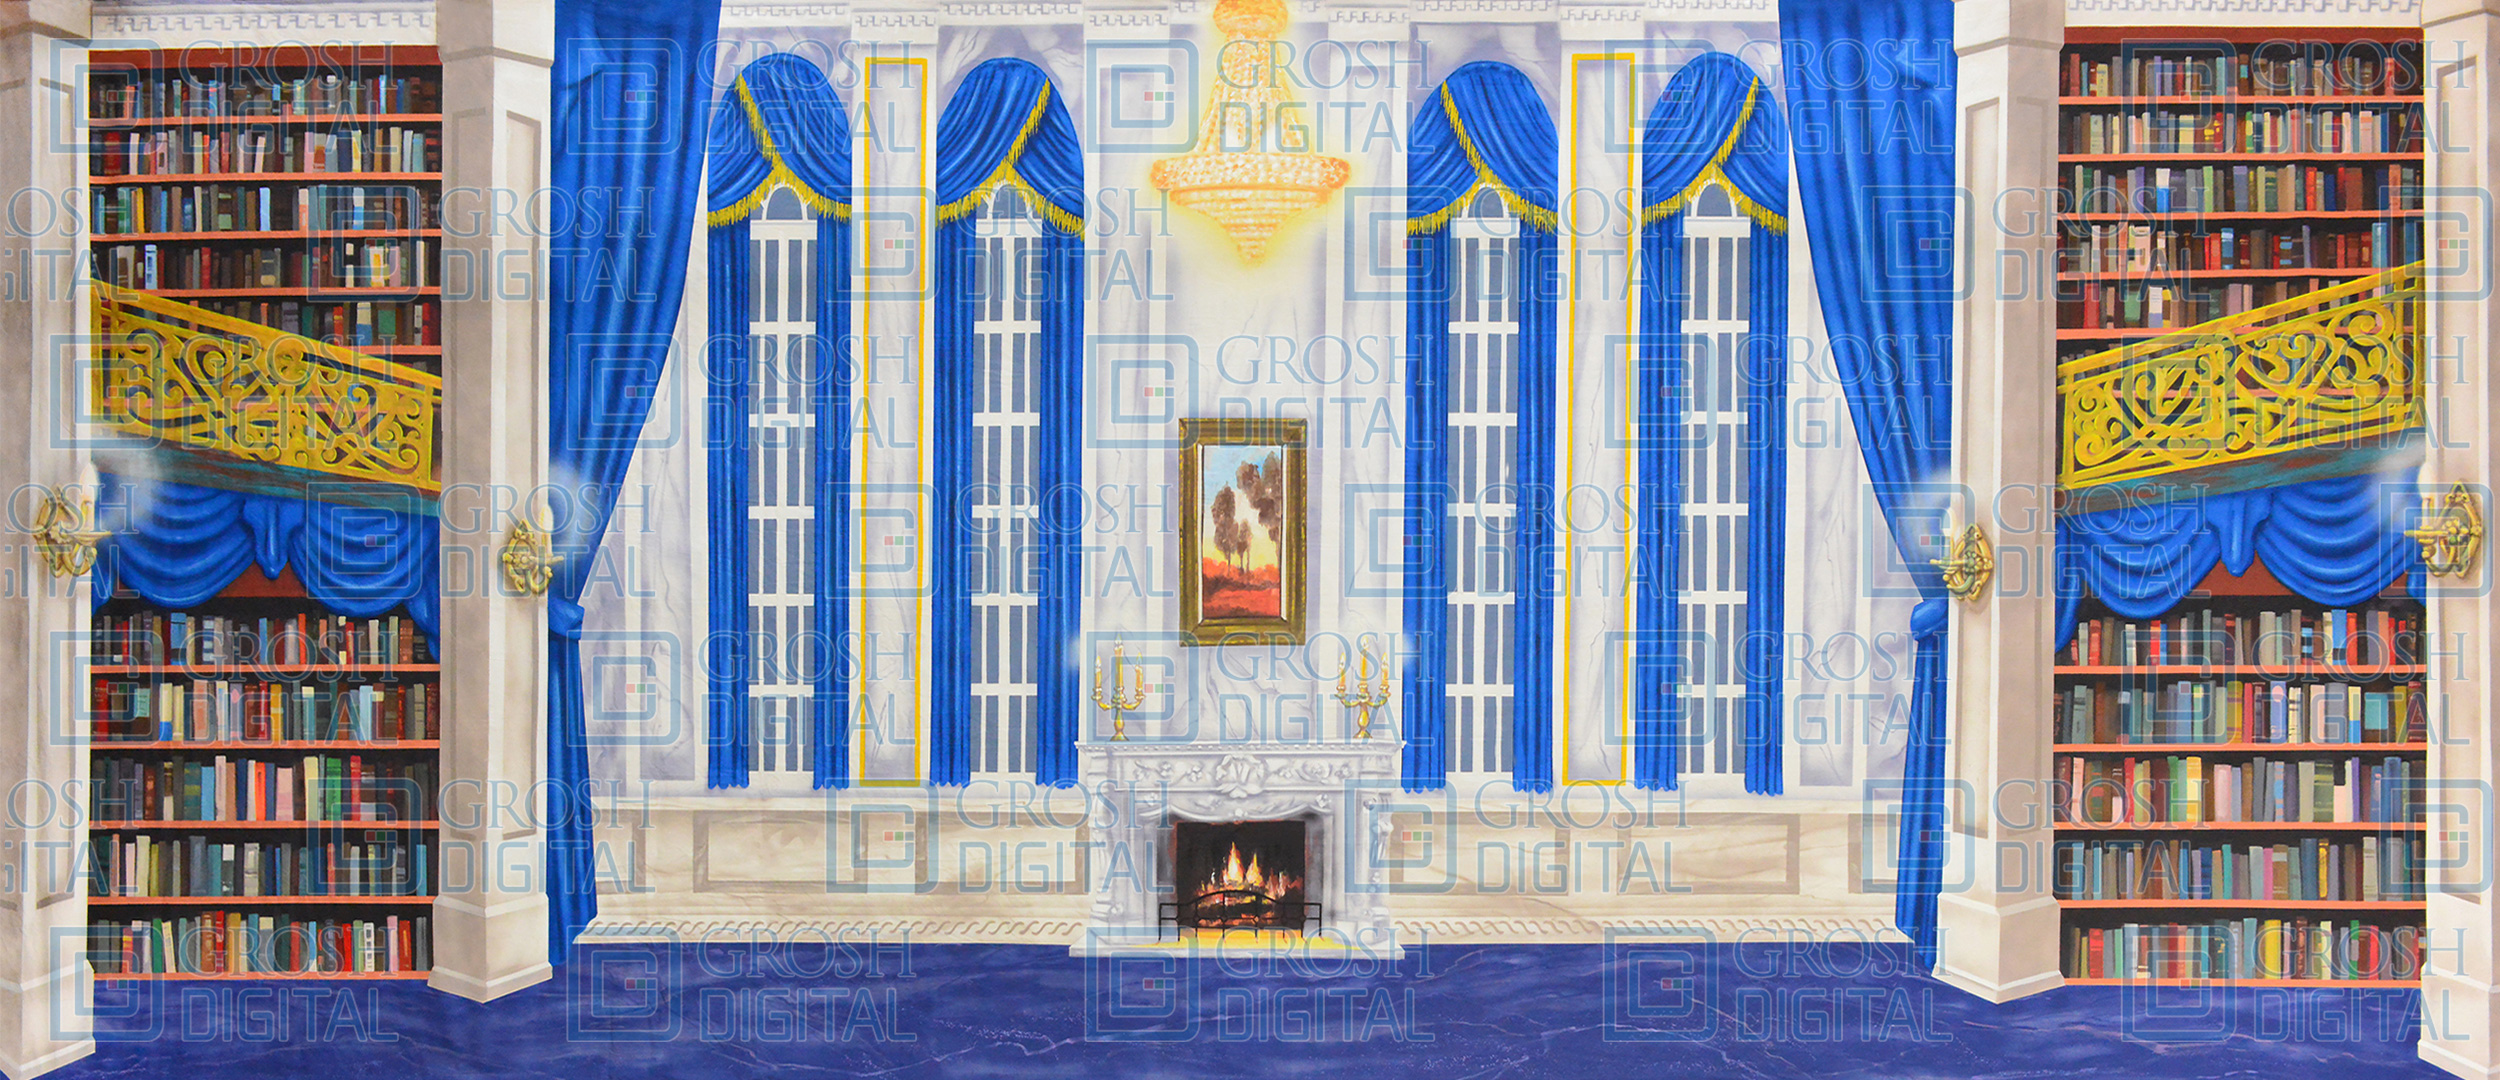 White Grand Study Projected Backdrop for Addams Family, Beauty and the Beast, Coppelia, Dance, Frozen, Interiors, Mamma Mia, Mary Poppins, My Fair Lady, Nutcracker, Palace/Parlors, Sleeping Beauty, Sound of Music